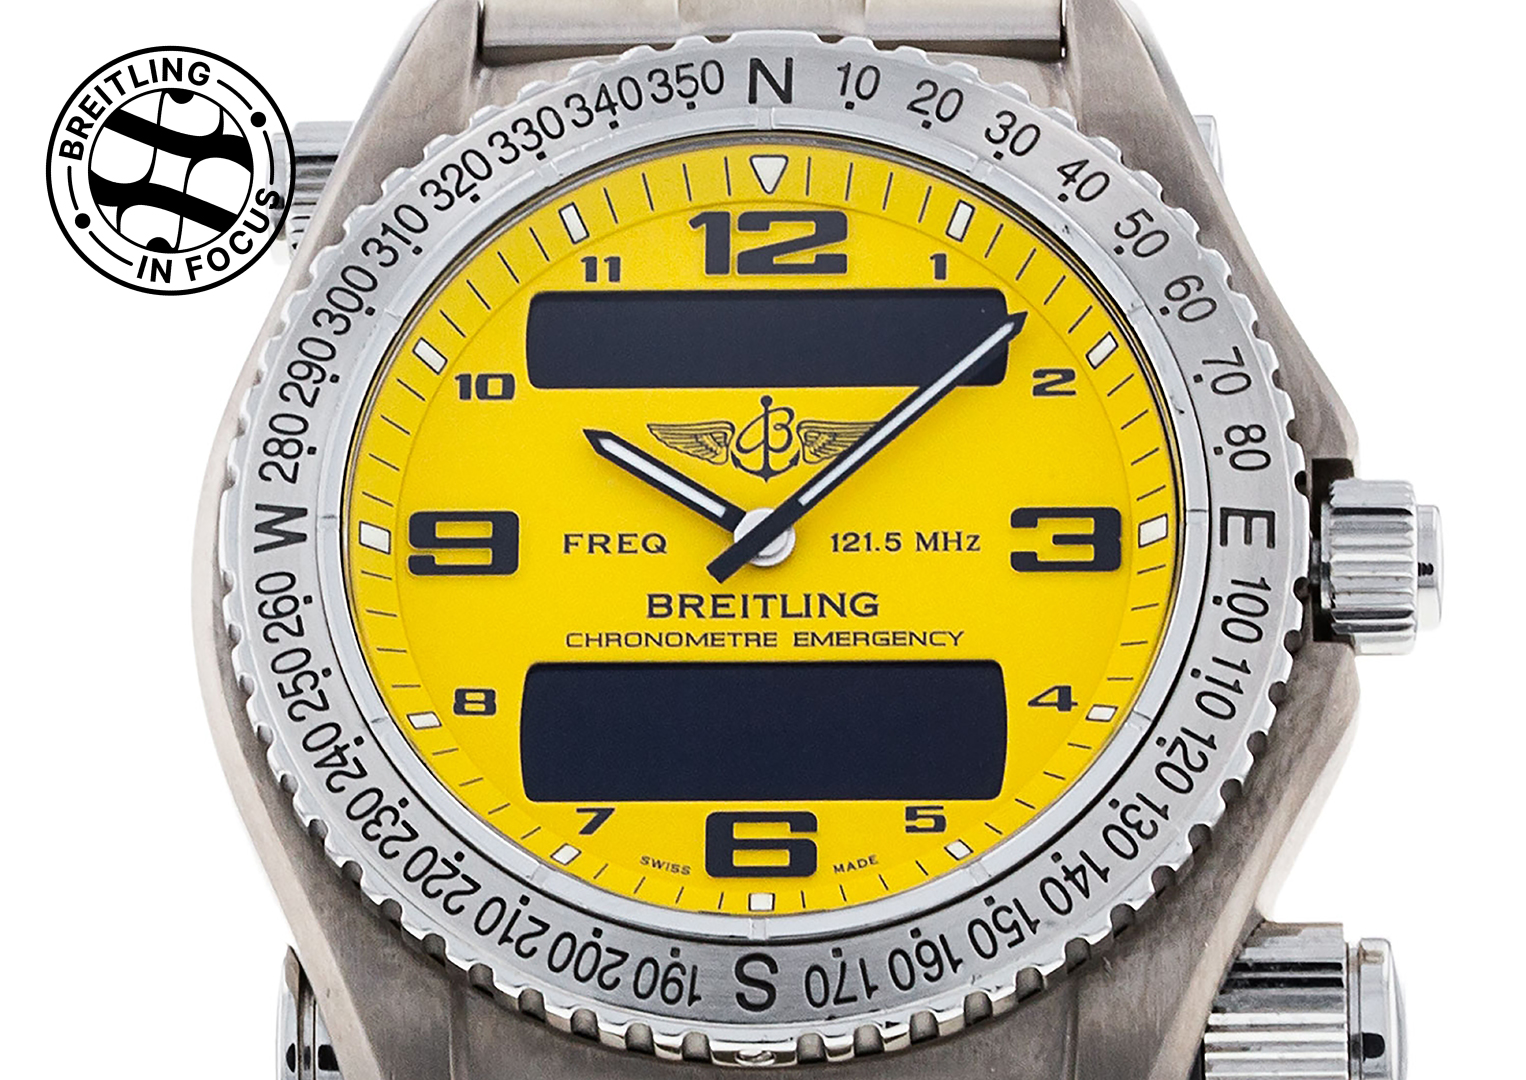 The Breitling Emergency watch has frequently come to the rescue of its wearer